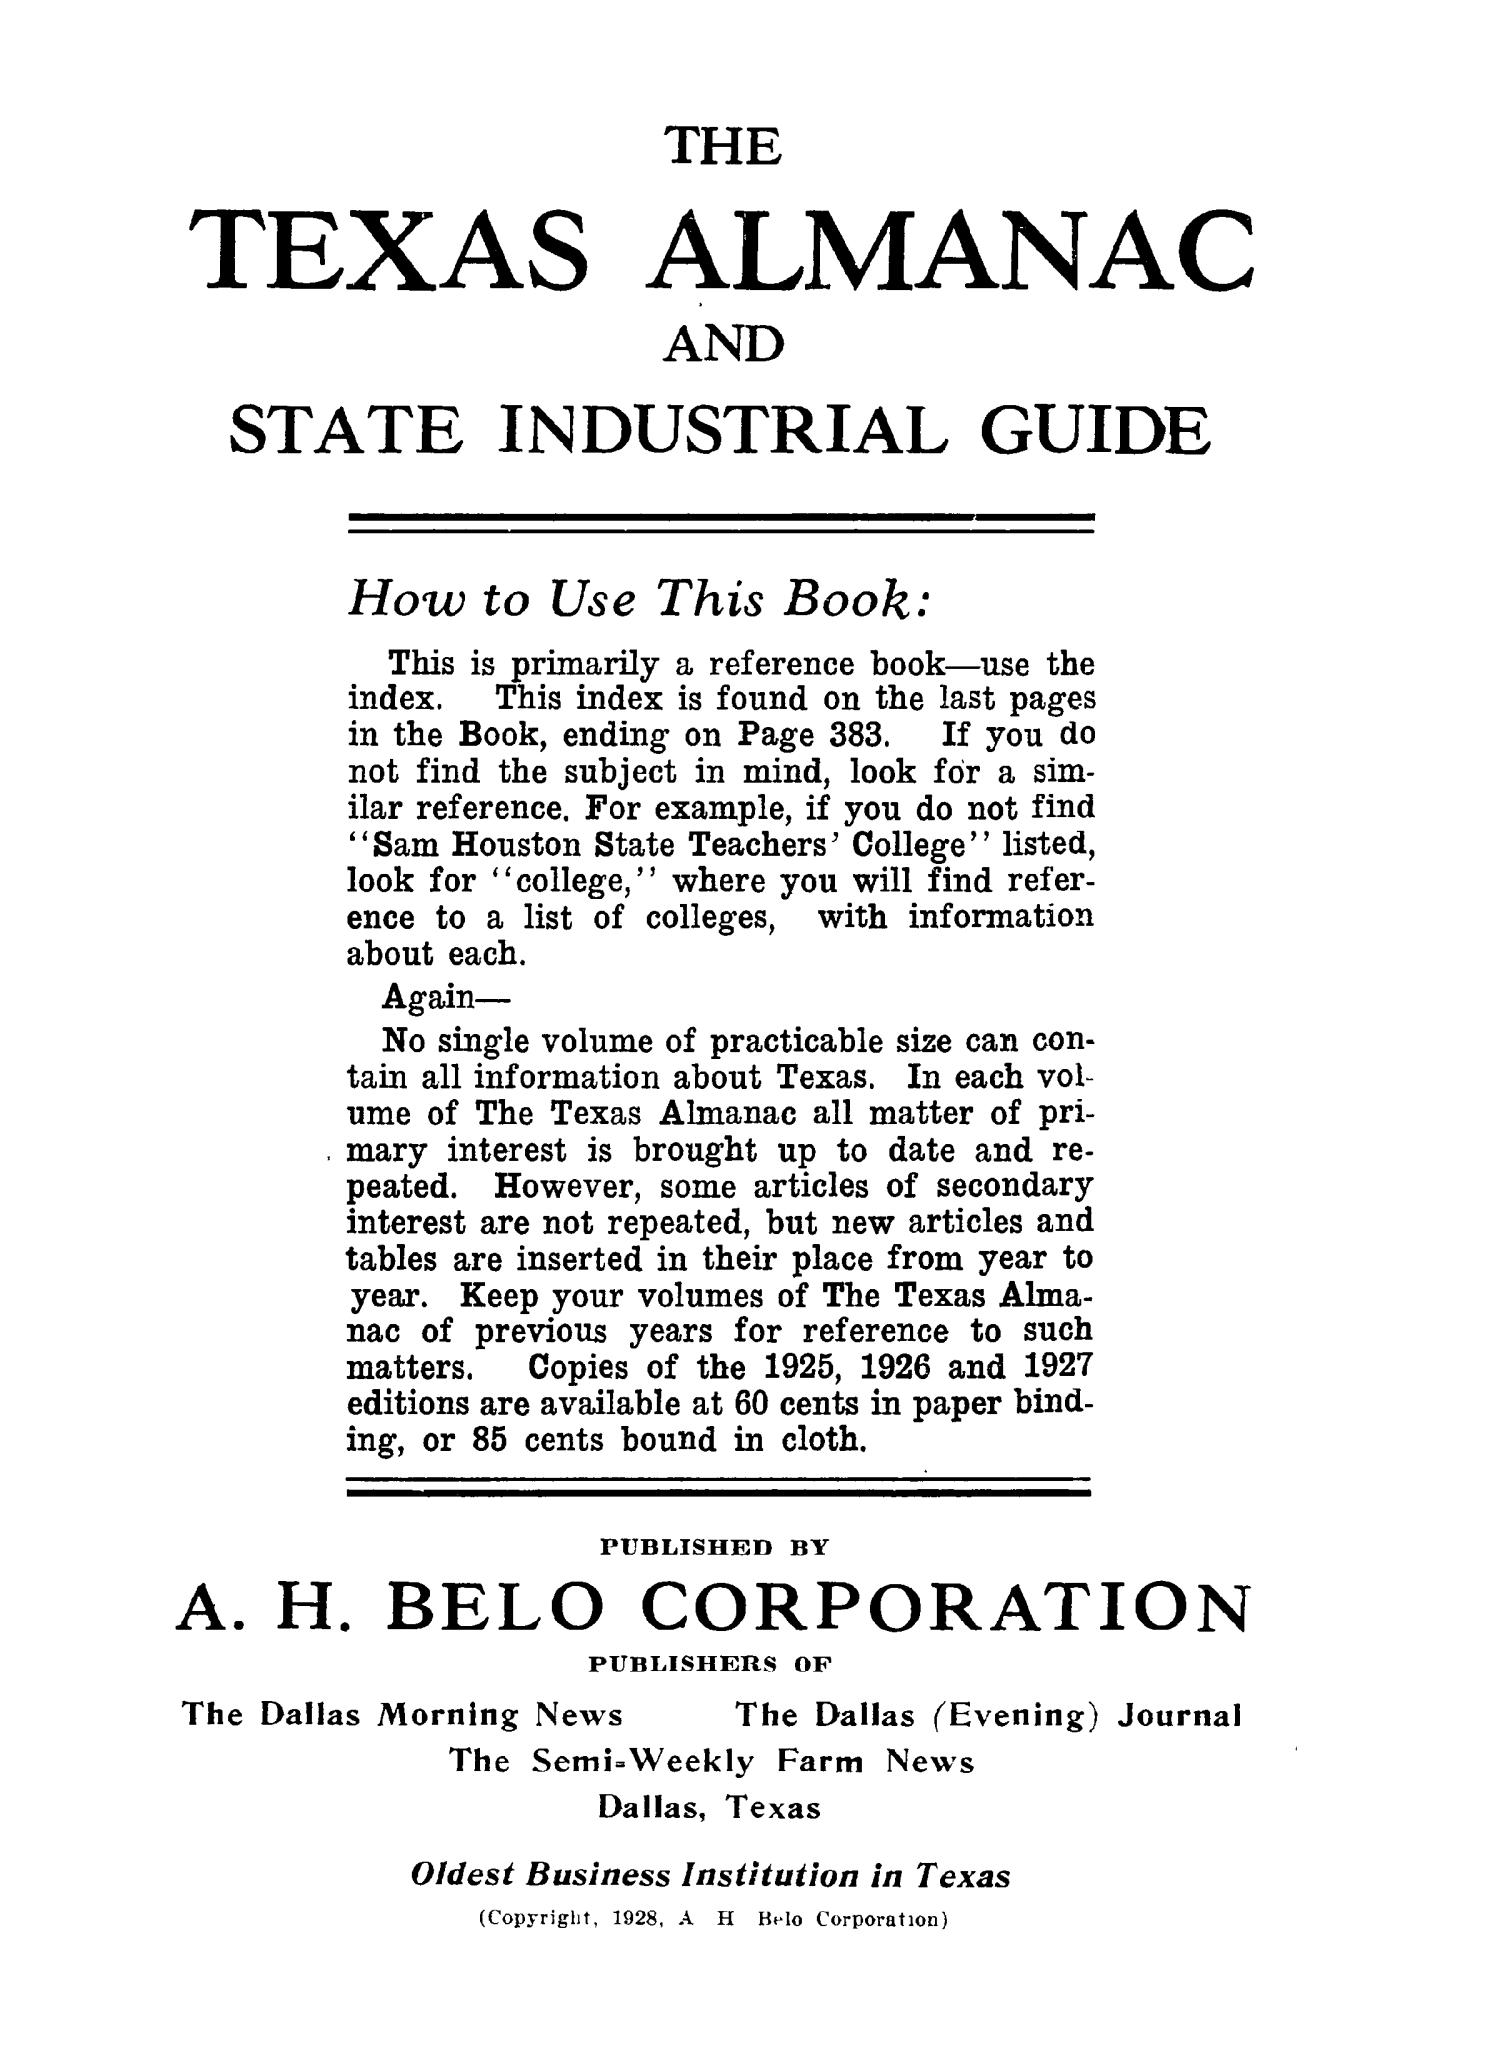 The 1928 Texas Almanac and State Industrial Guide                                                                                                      1